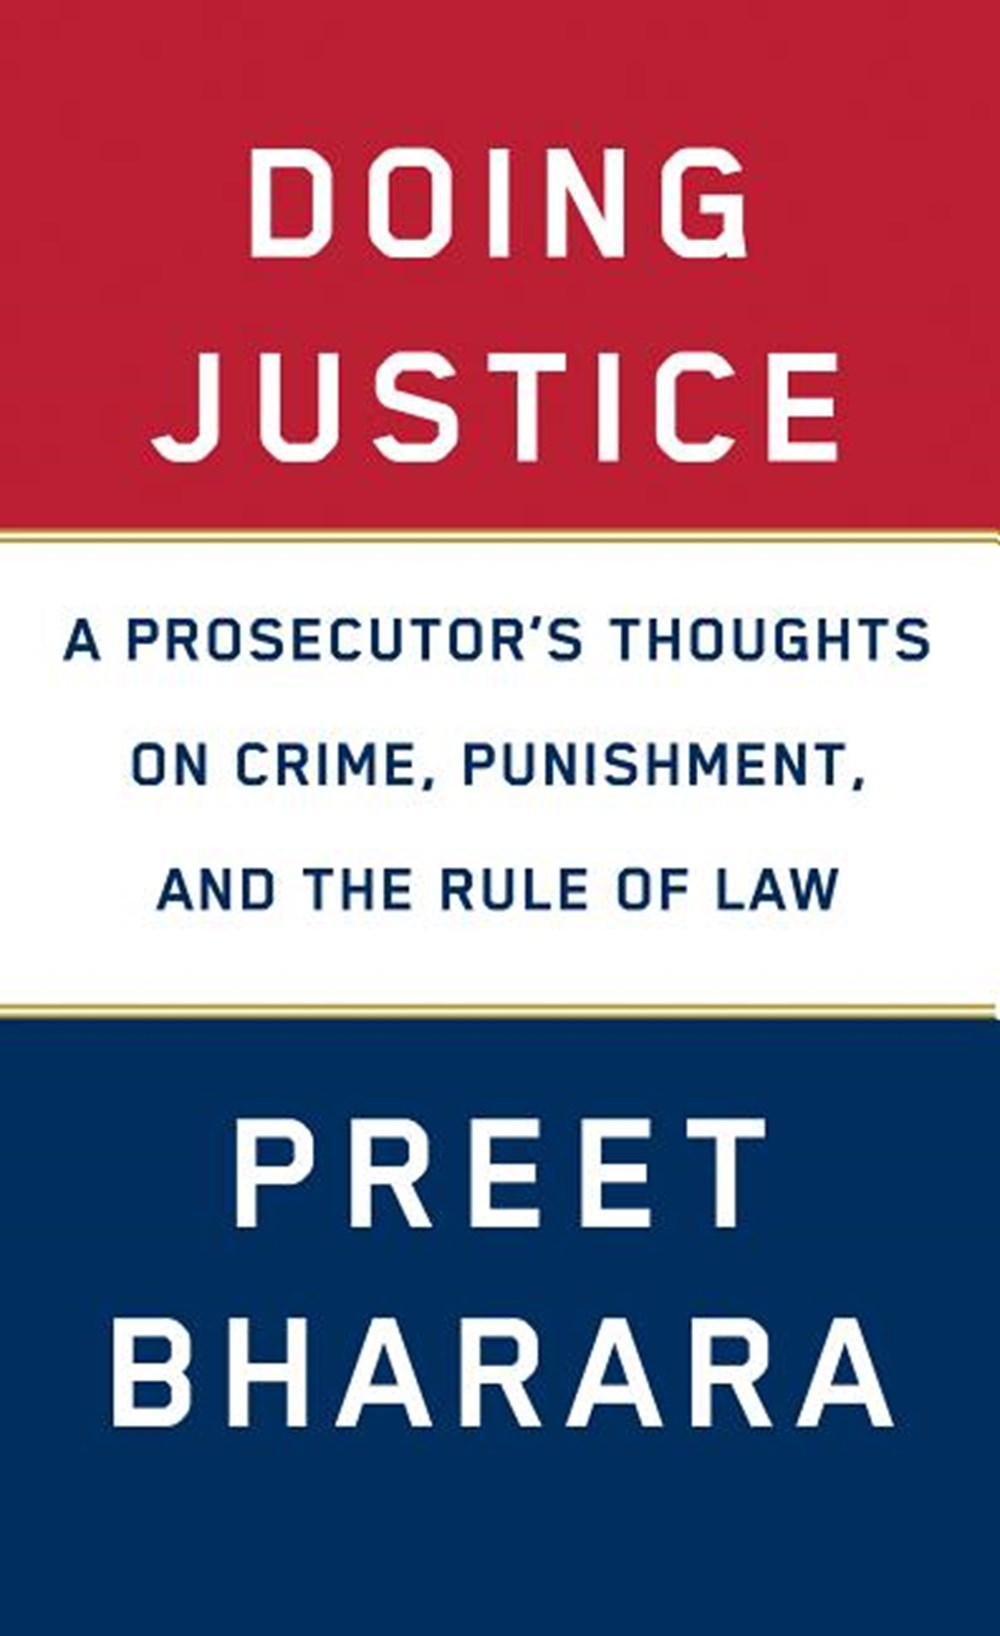 Doing Justice A Prosecutor's Thoughts on Crime, Punishment, and the Rule of Law